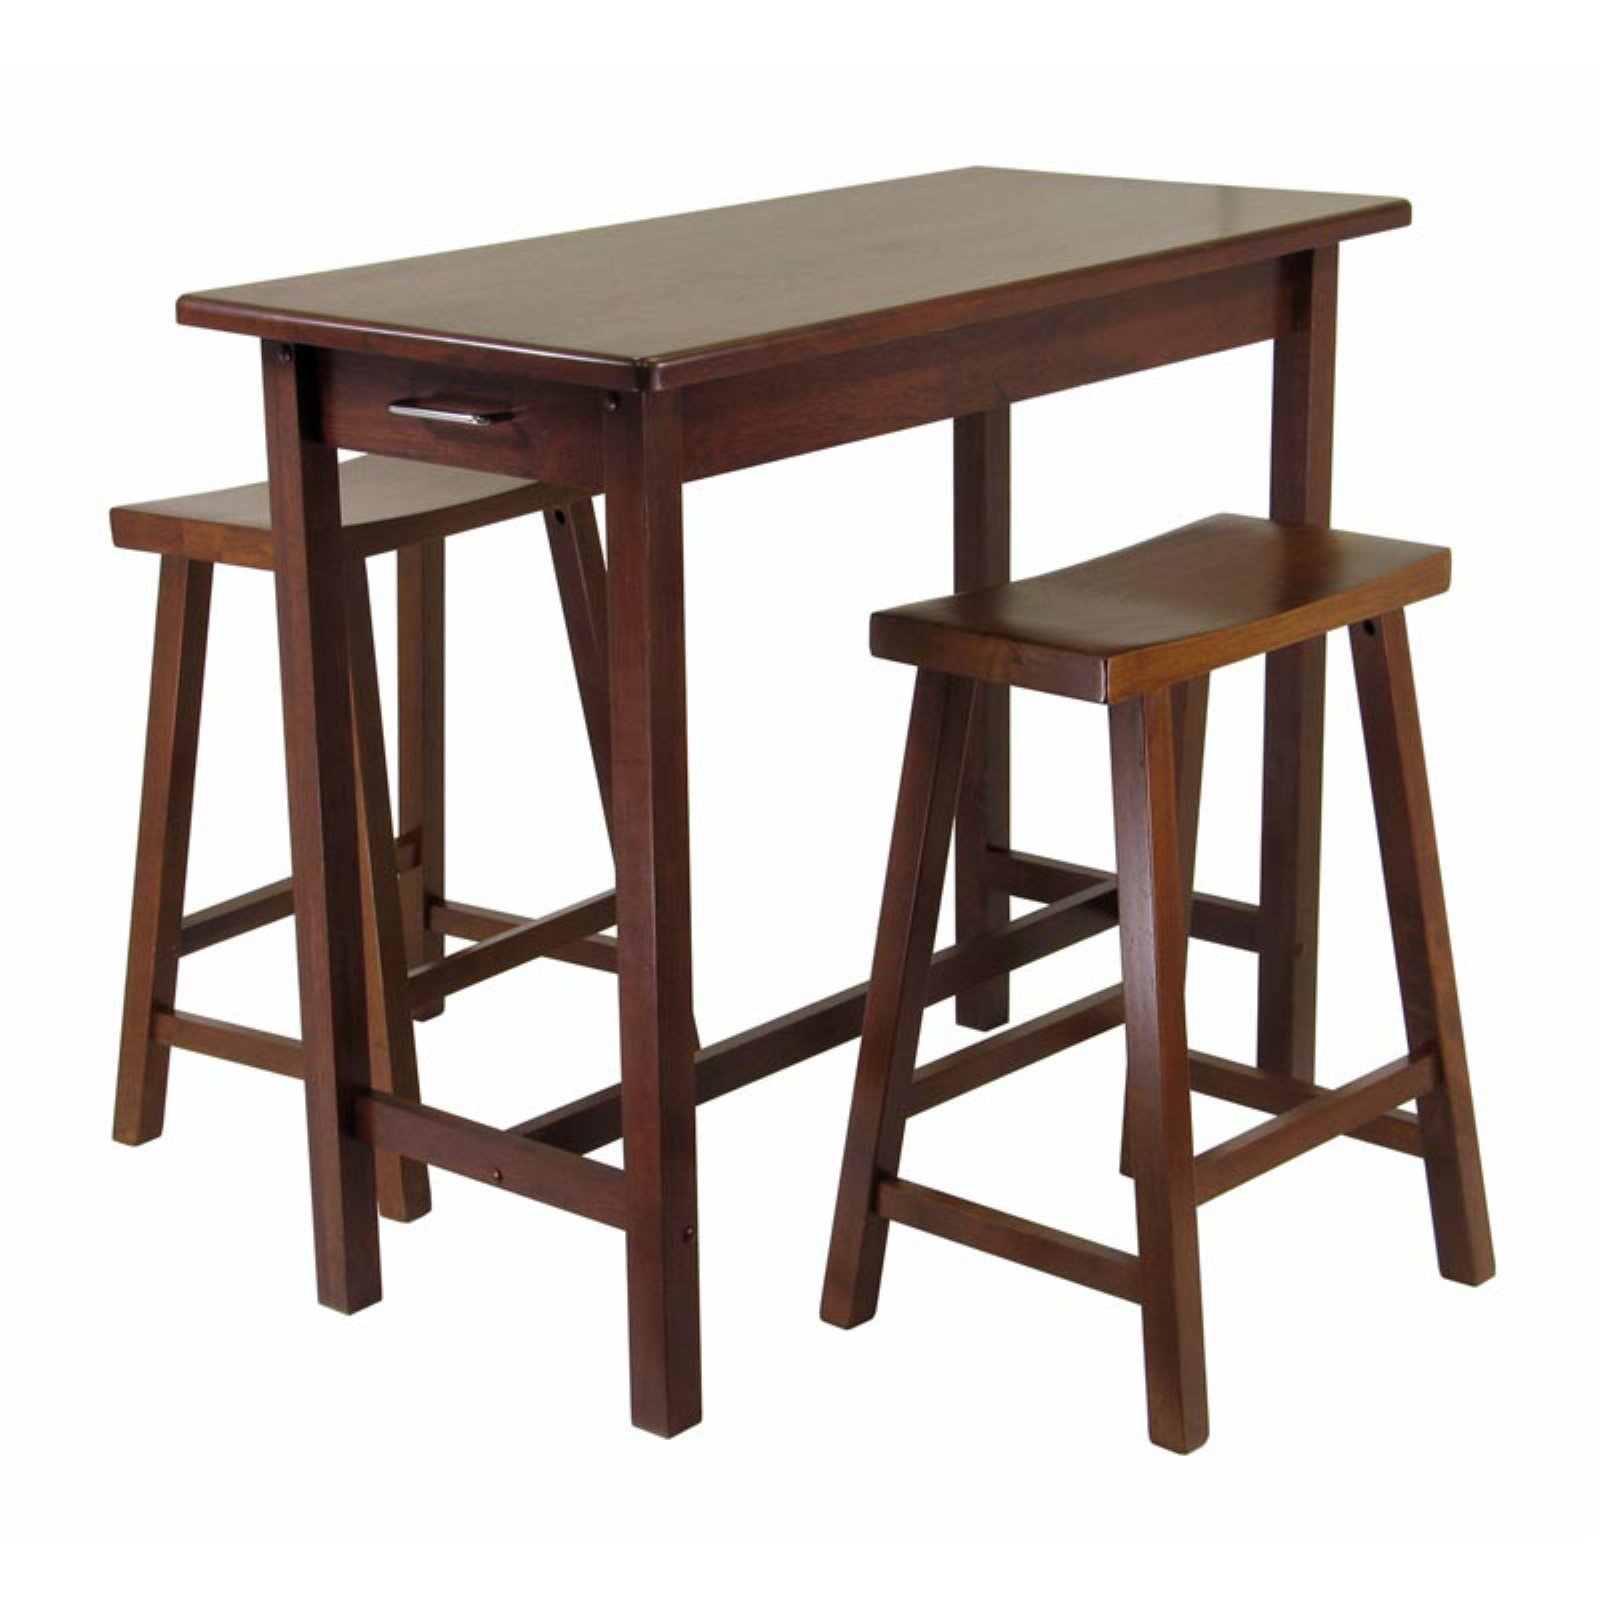 Sally 3-Pc Breakfast Table Set with 2 Saddle Seat Stools